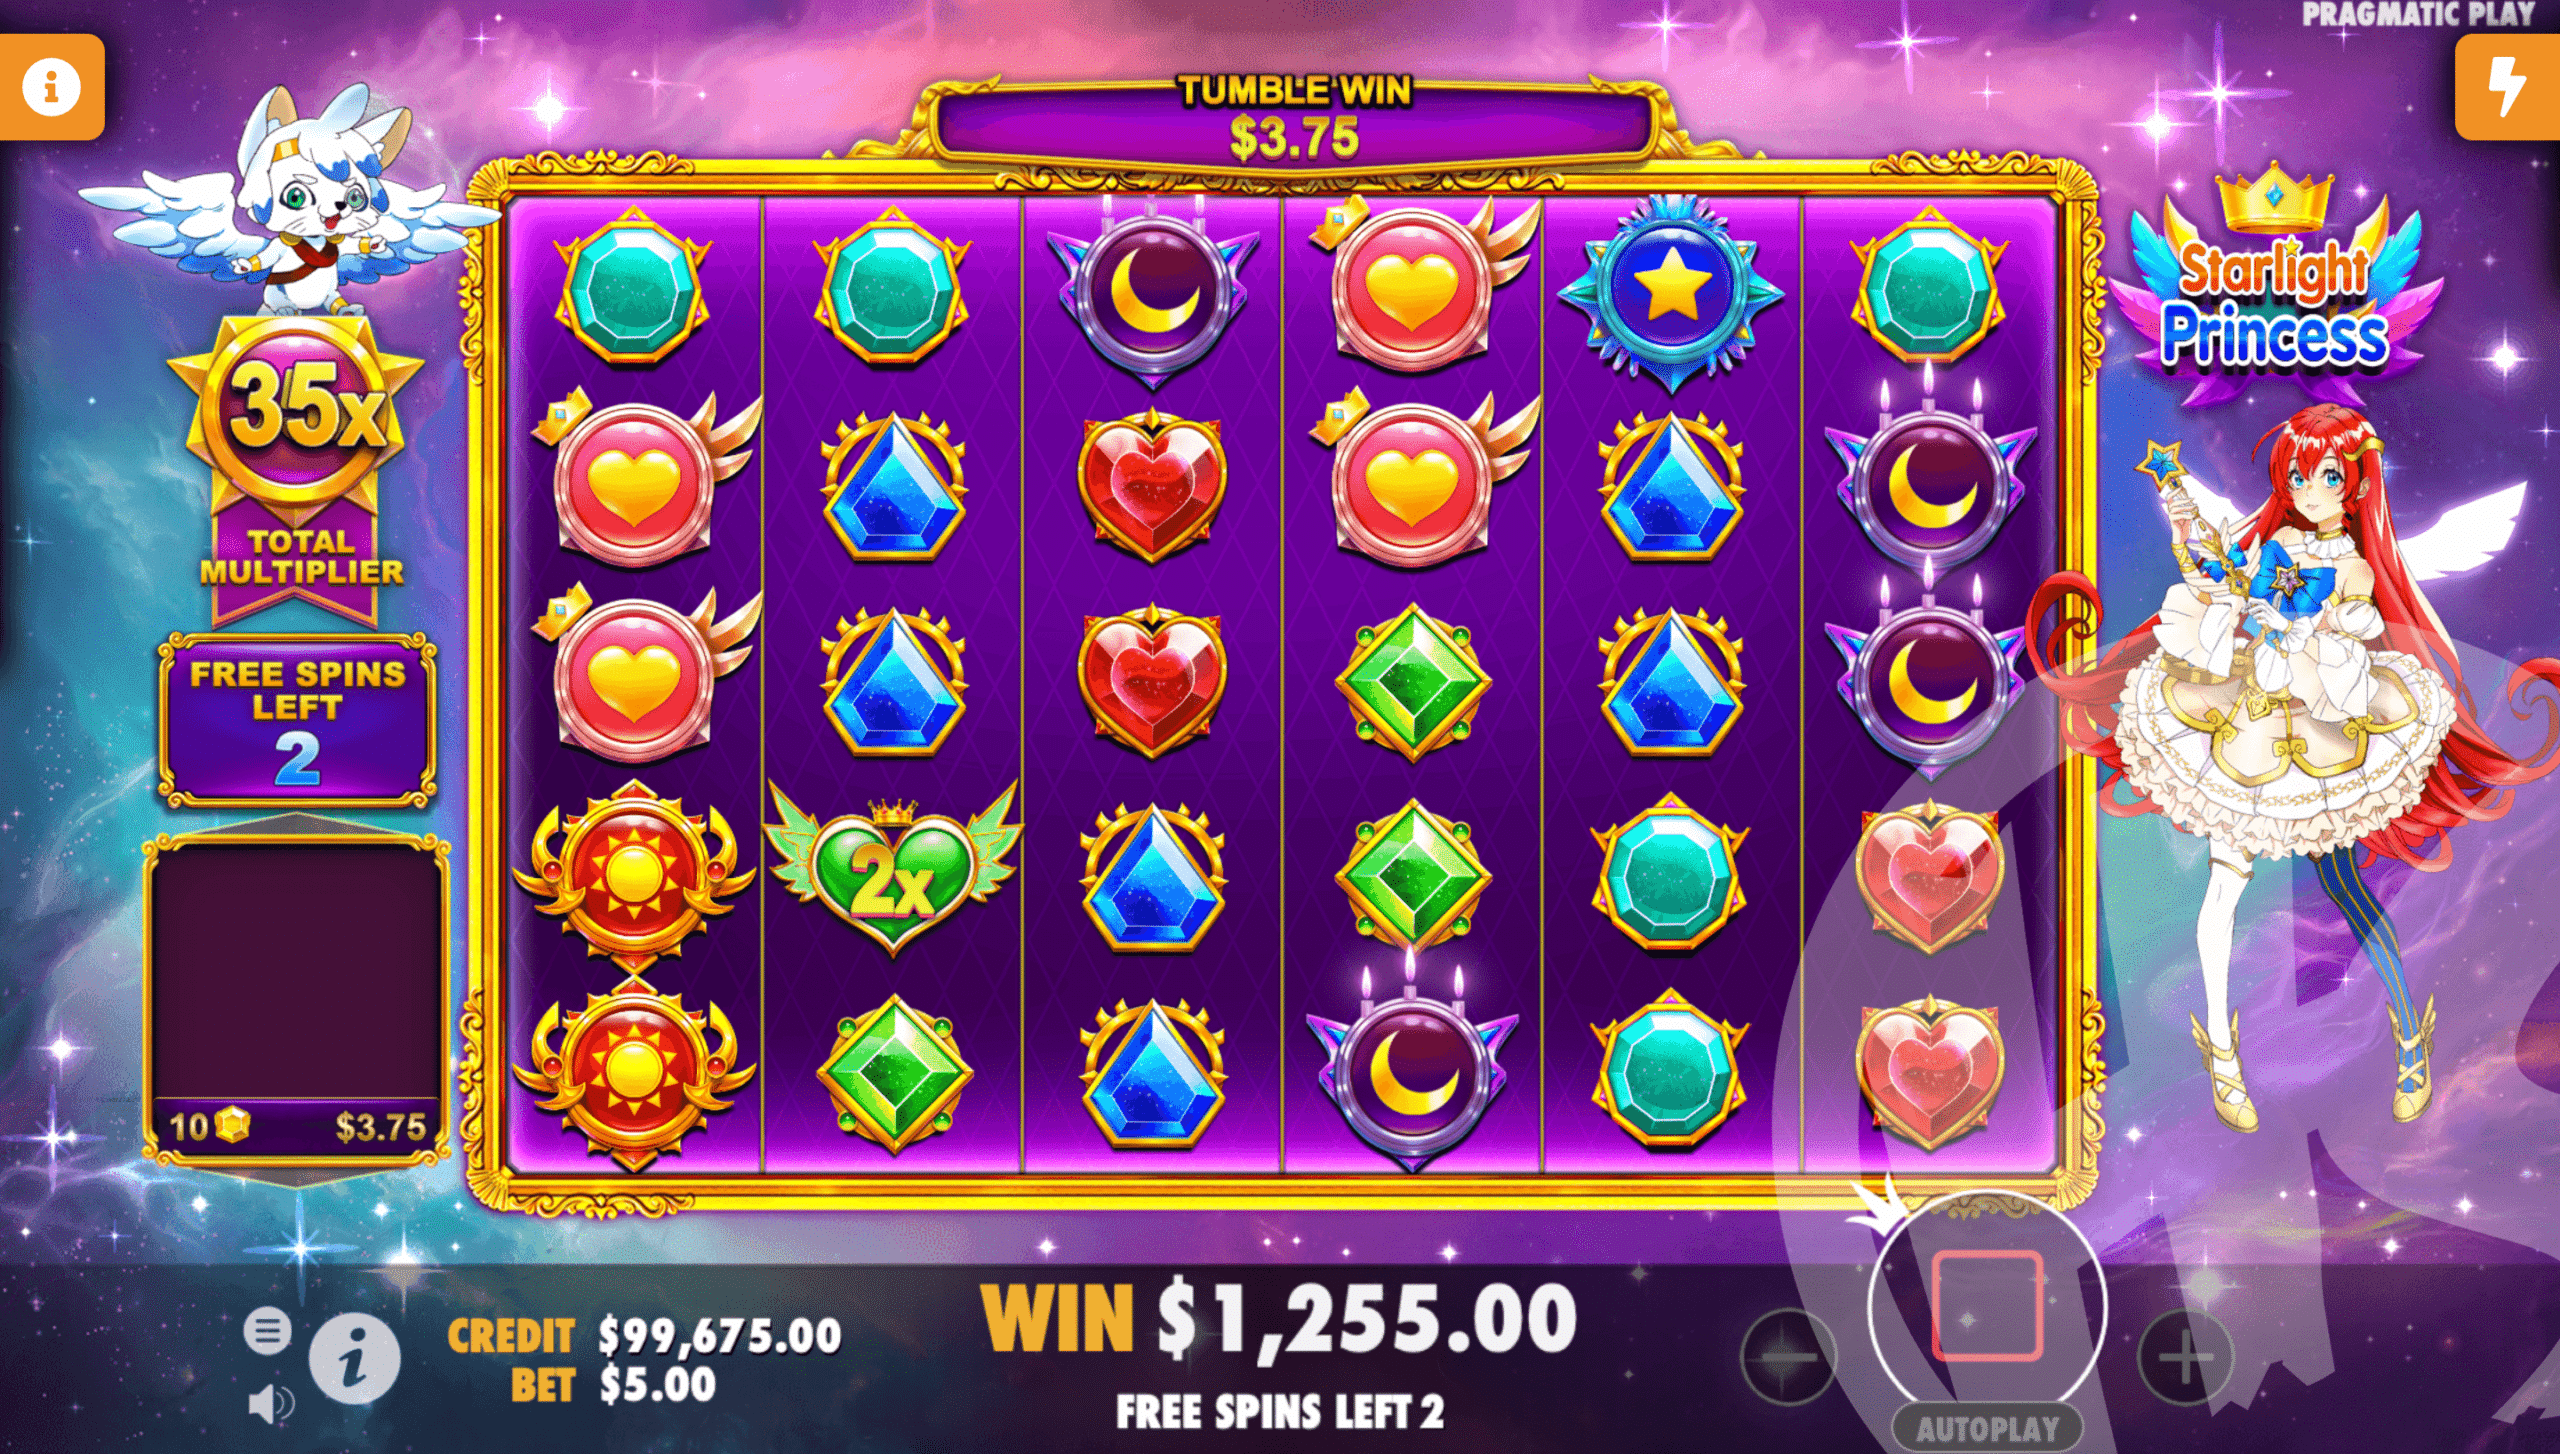 4 or More Scatters Trigger Free Spins